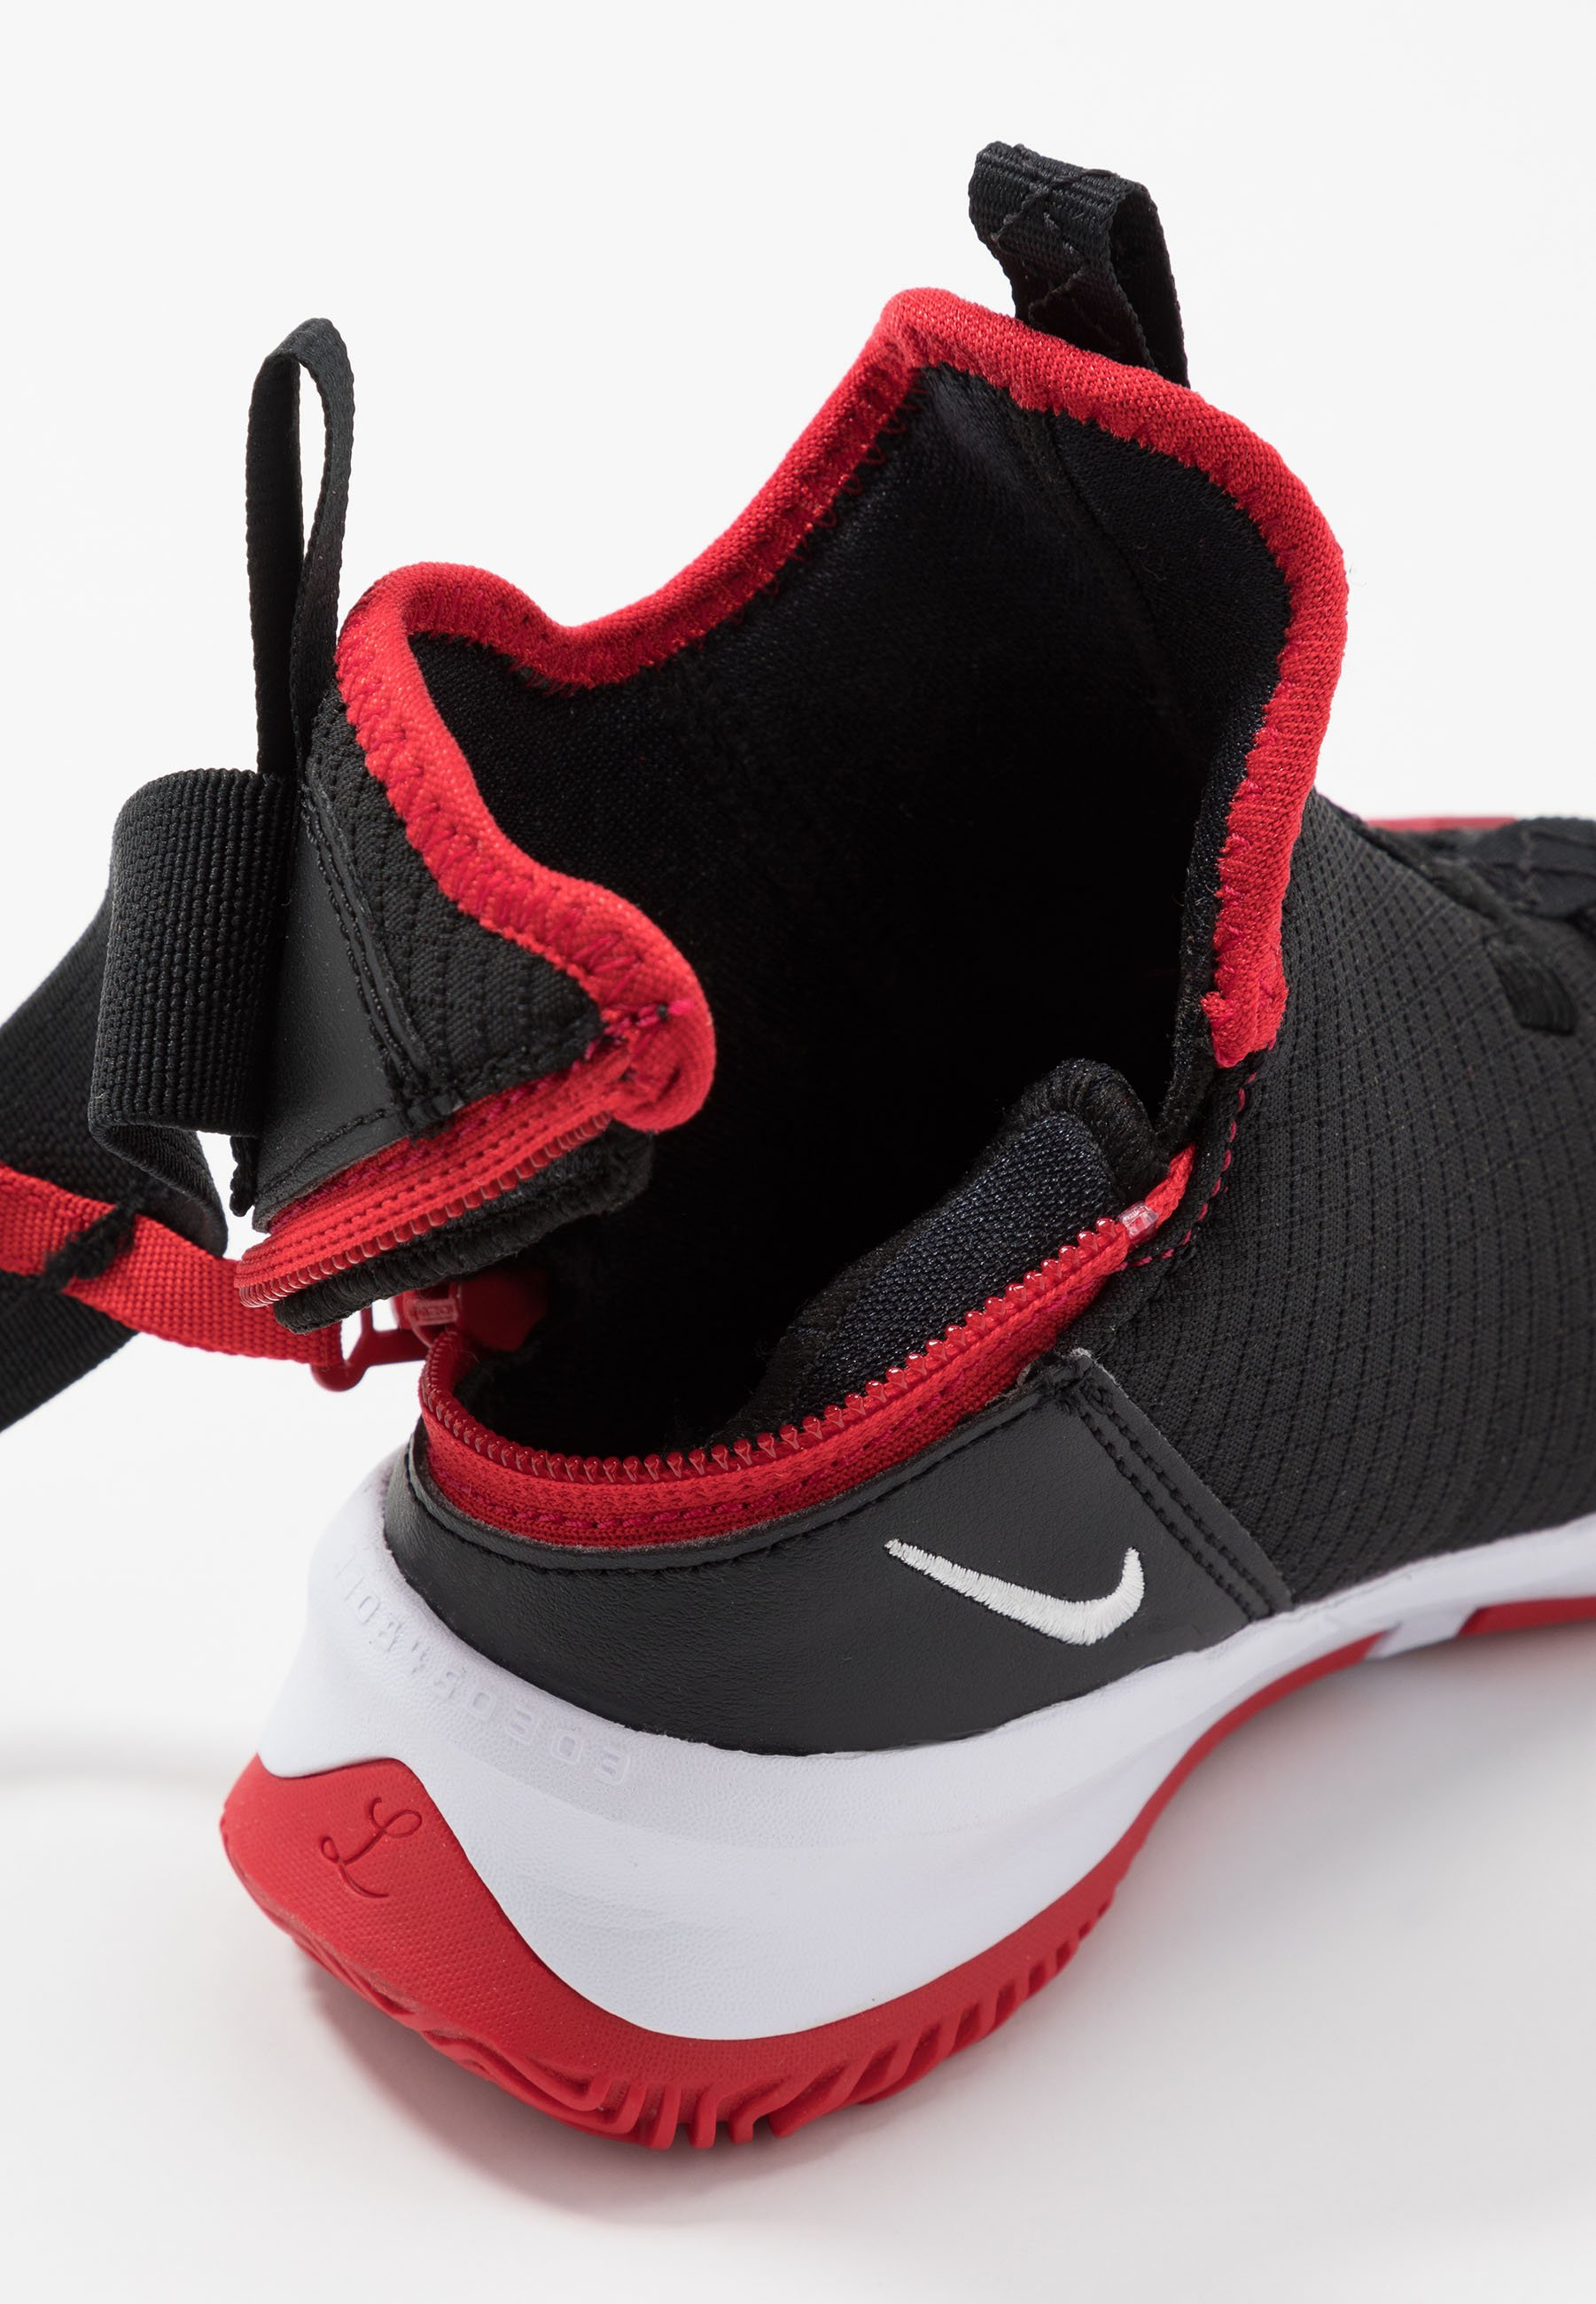 Chaussures de basket LeBron XIV | Chaussures Nike